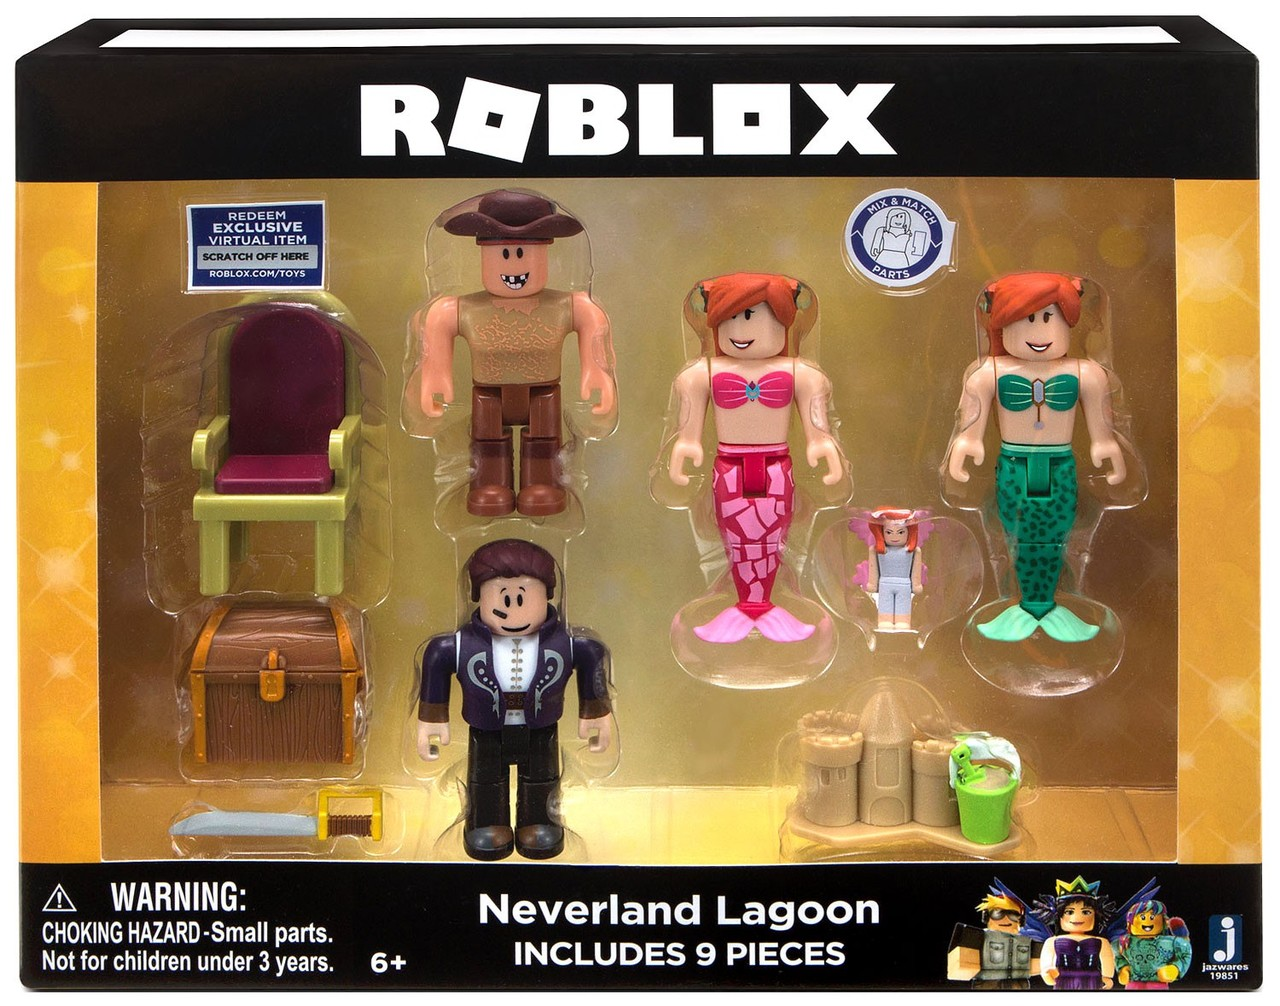 Roblox Wwwtoyscom Roblox Celebrity Collection Neverland Lagoon 3 Action Figure 4